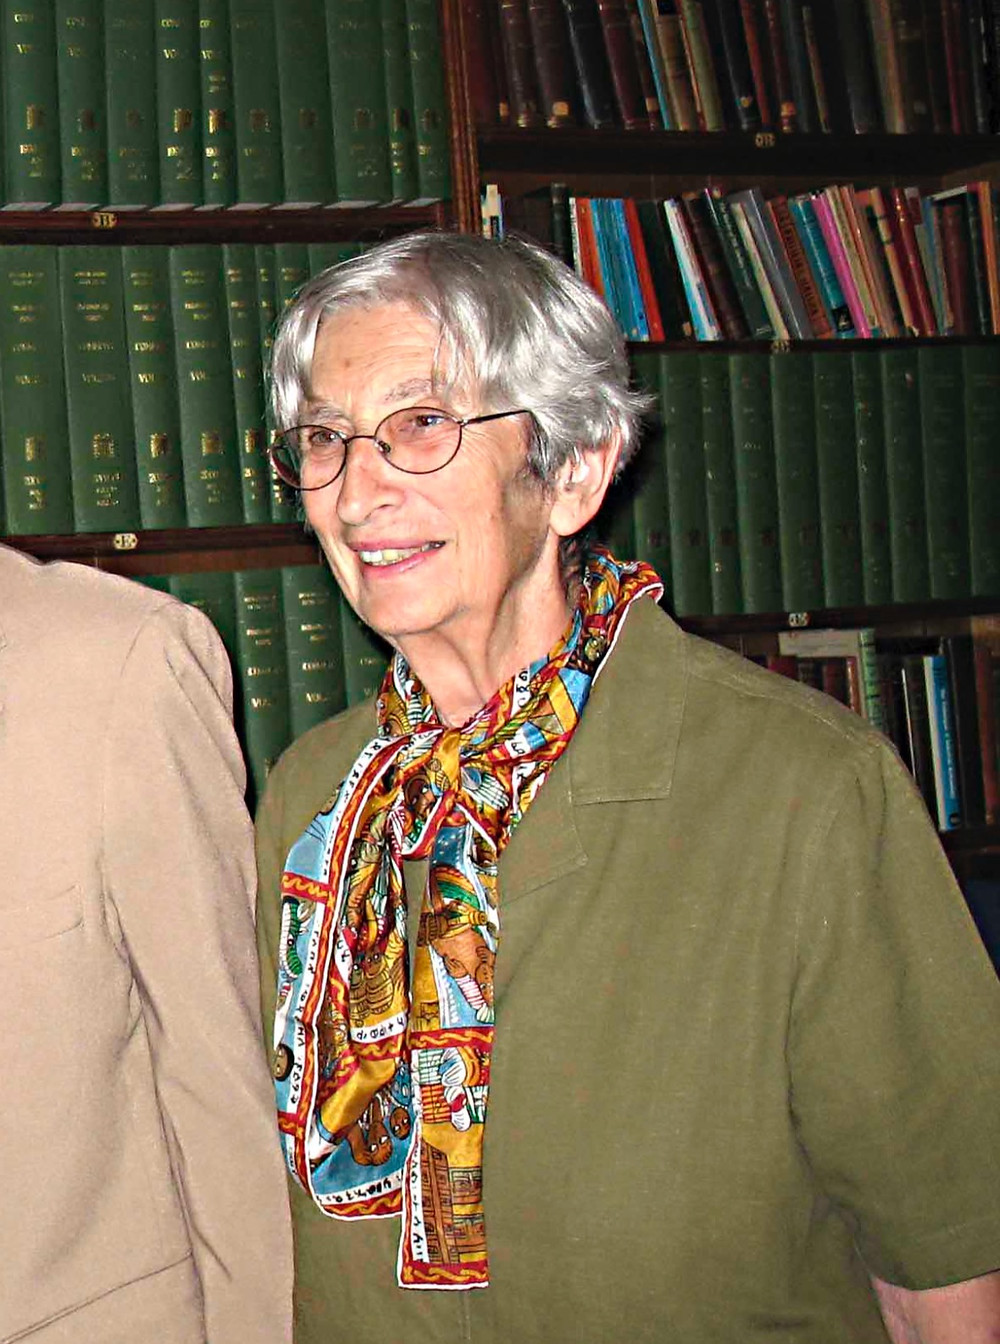 Rita Pankhurst at Wortley Hall in 2009